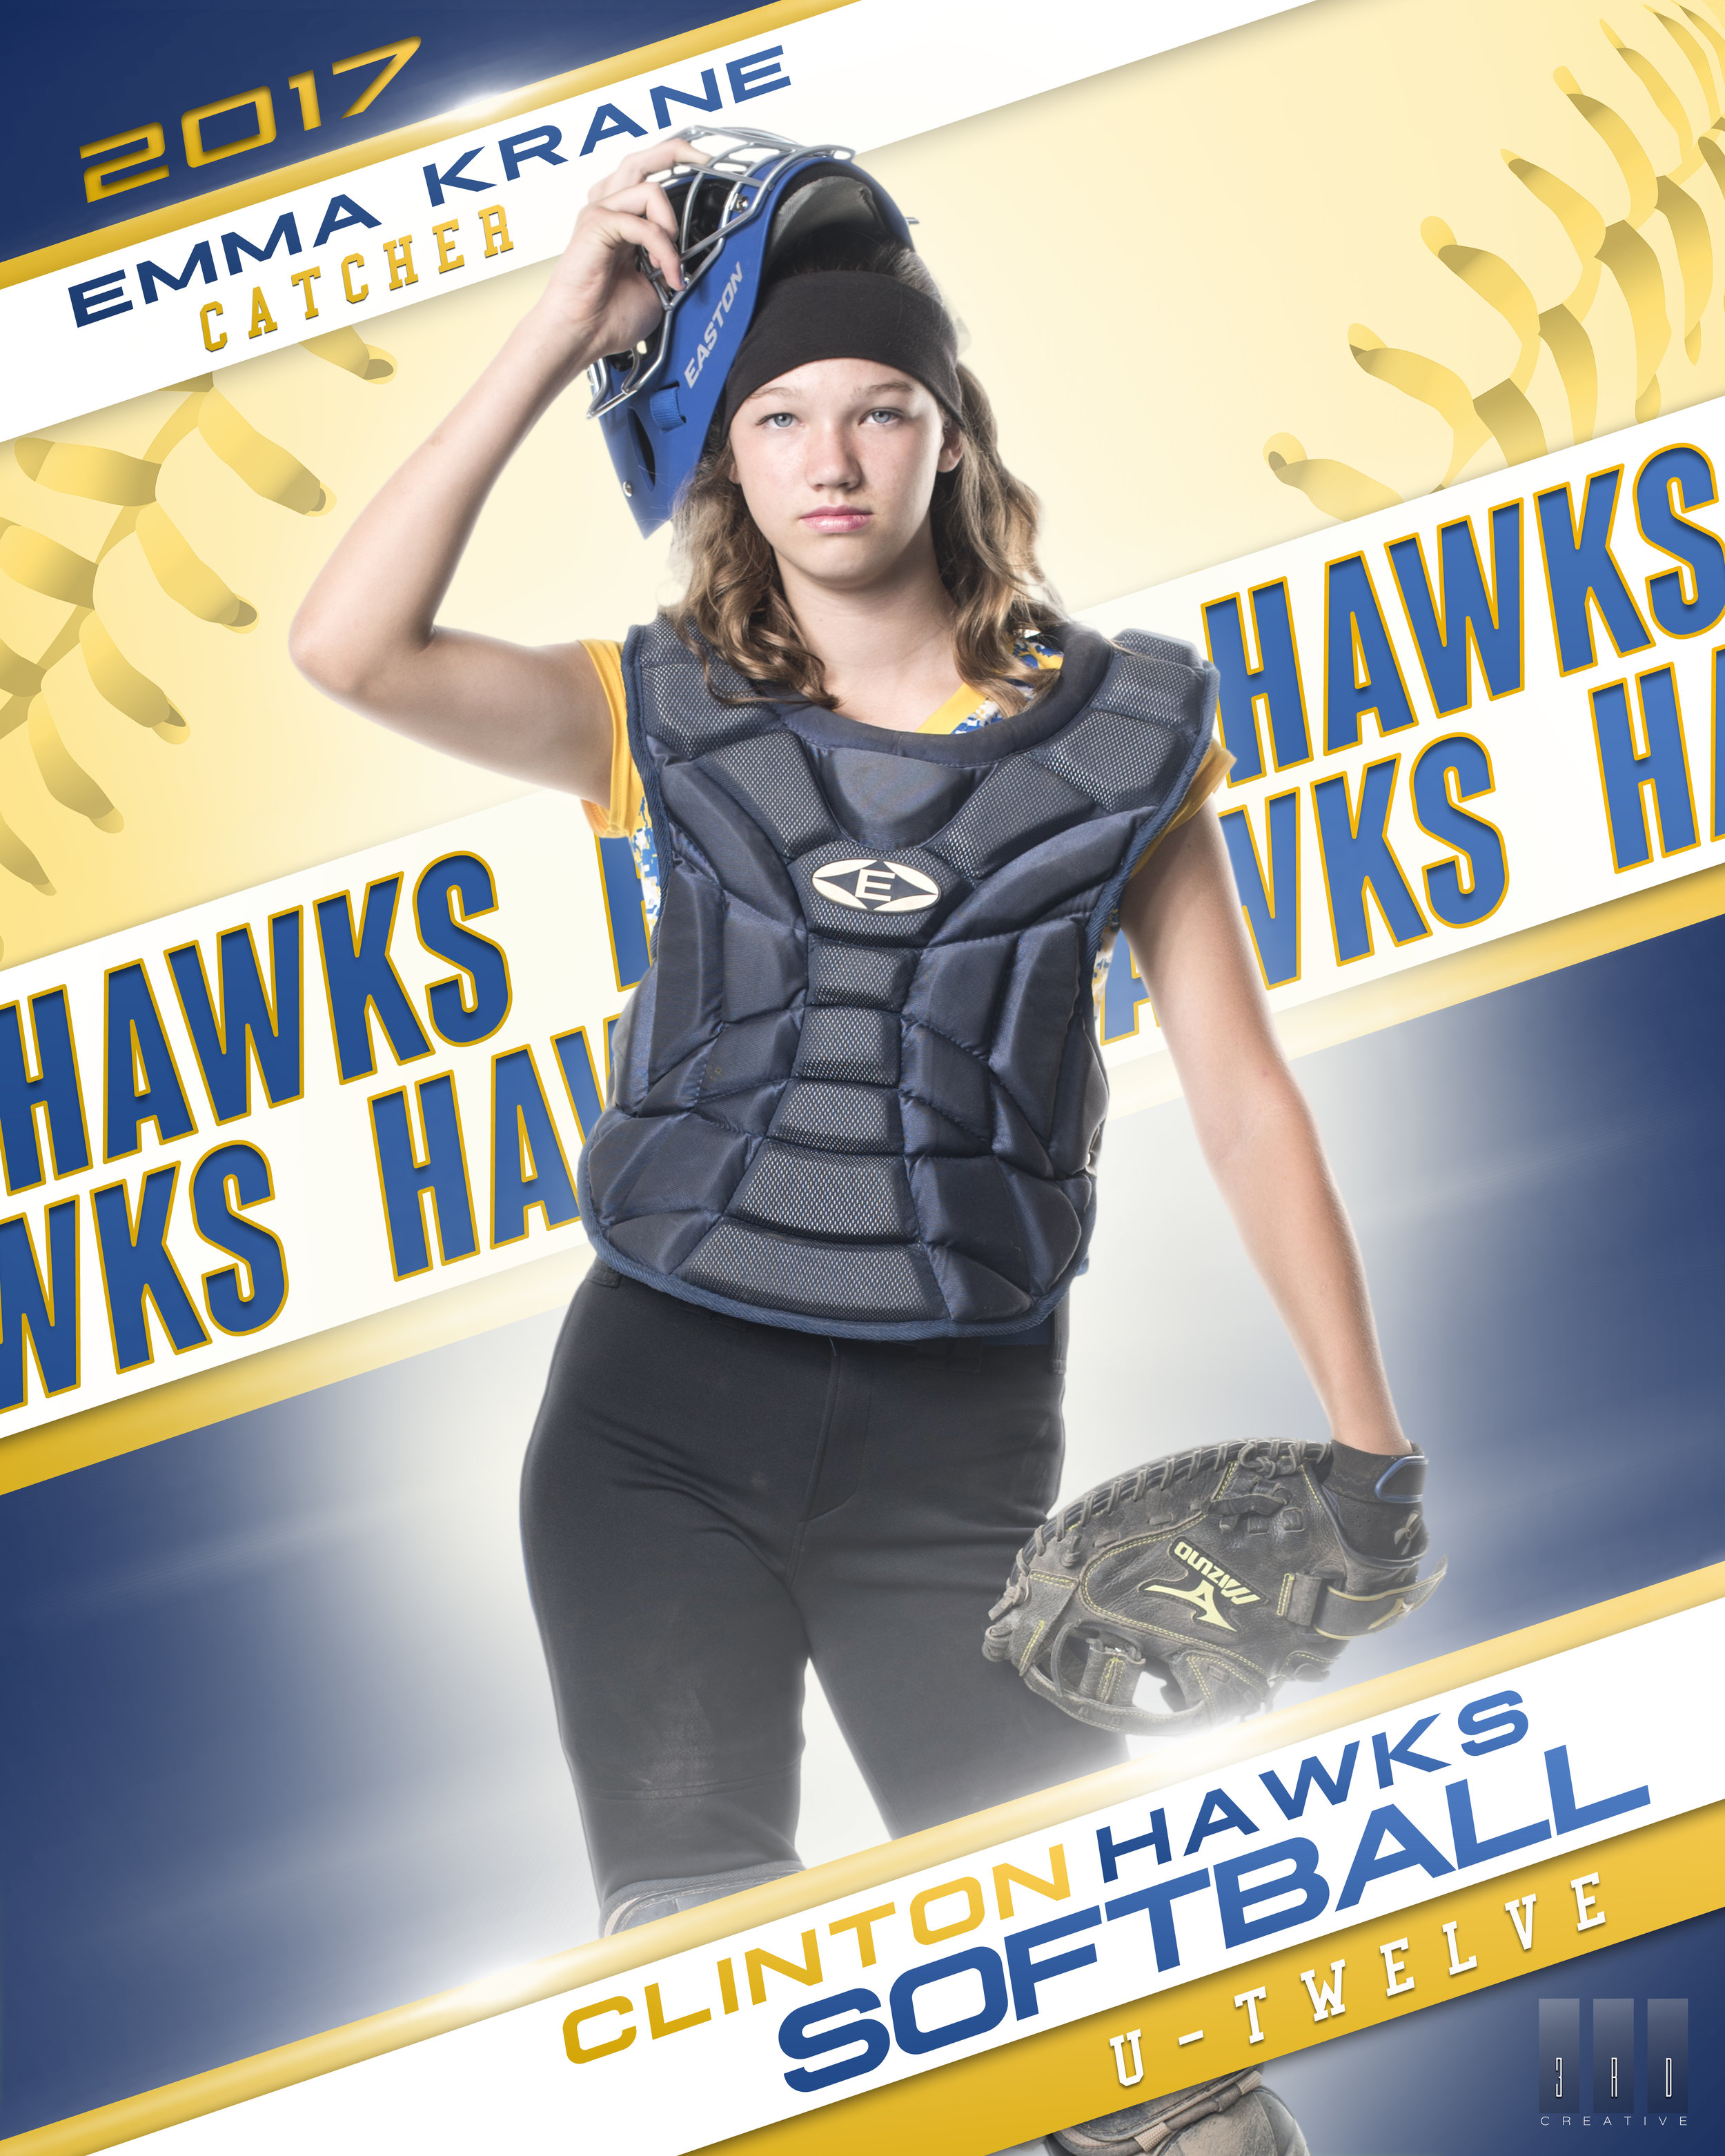 5_Softball_Utility_Player_16x20_Ind.jpg